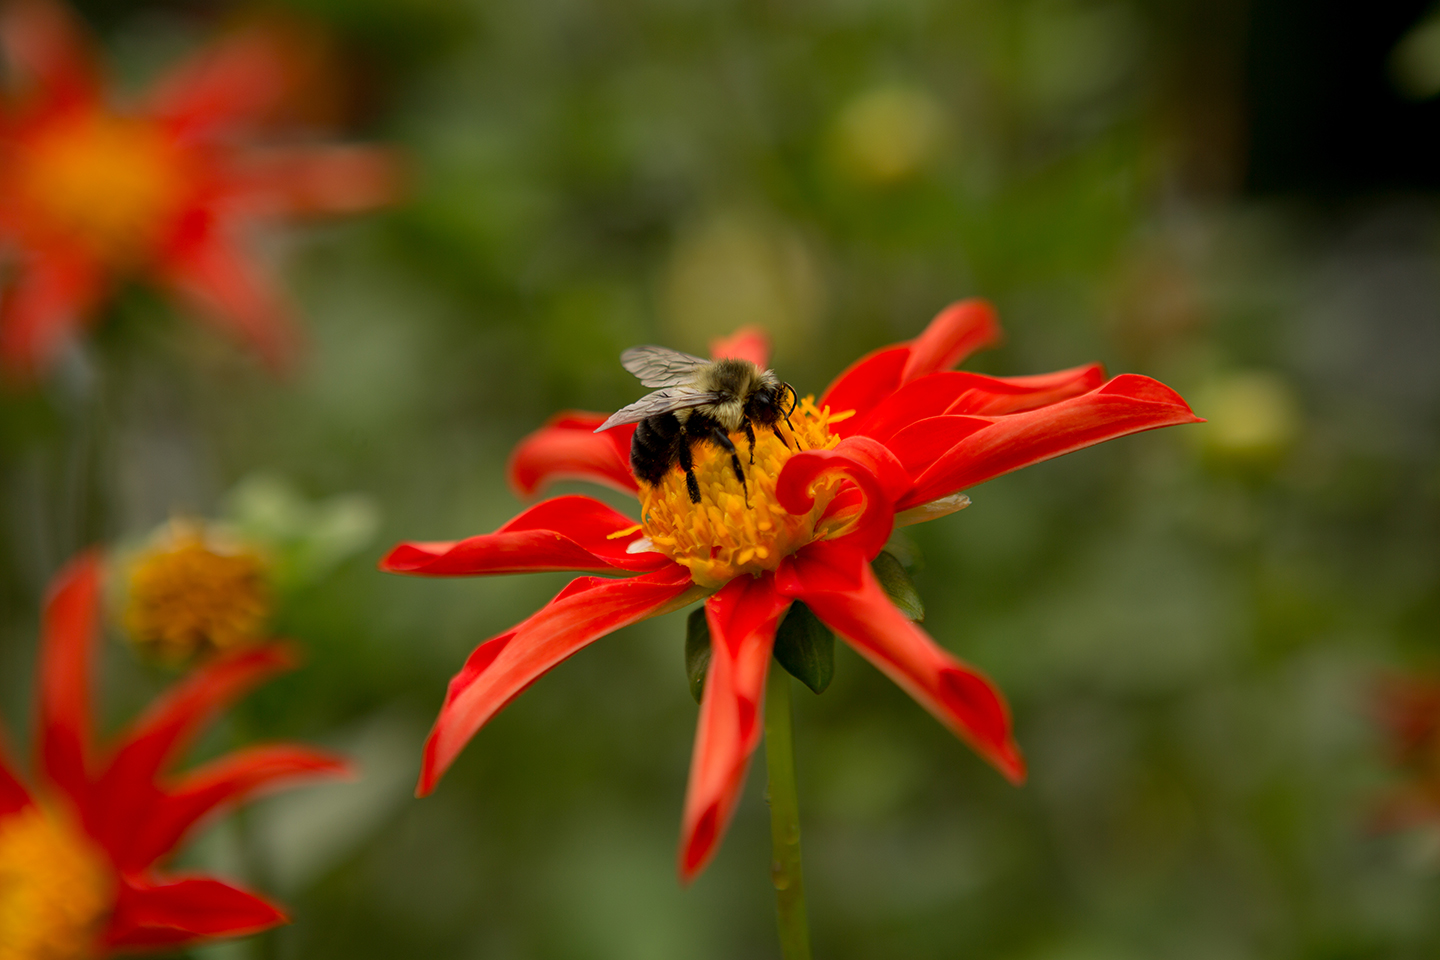 Red-Dahlia-with-an-Insect.jpg